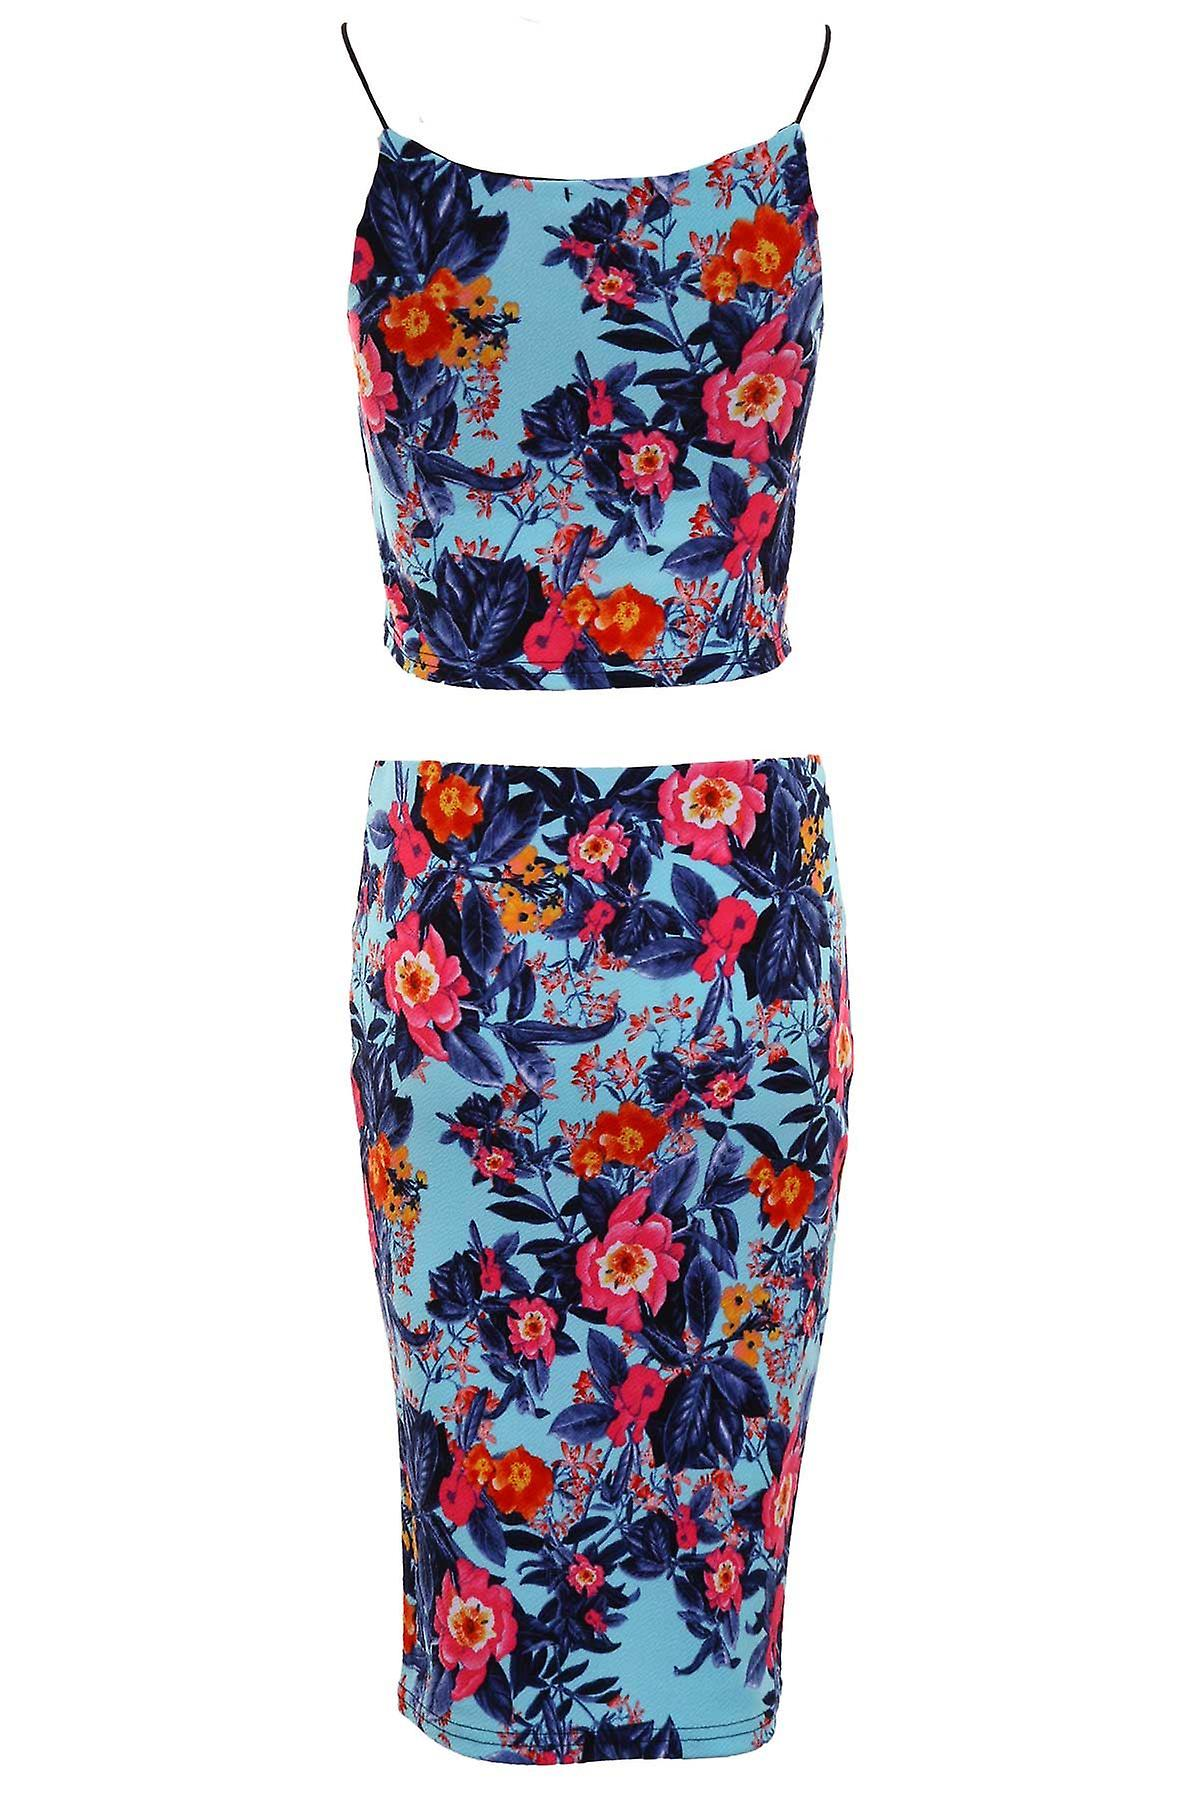 Ladies Floral Aztec Print Summer Casual Bodycon Crop Top Skirt Set Two Piece